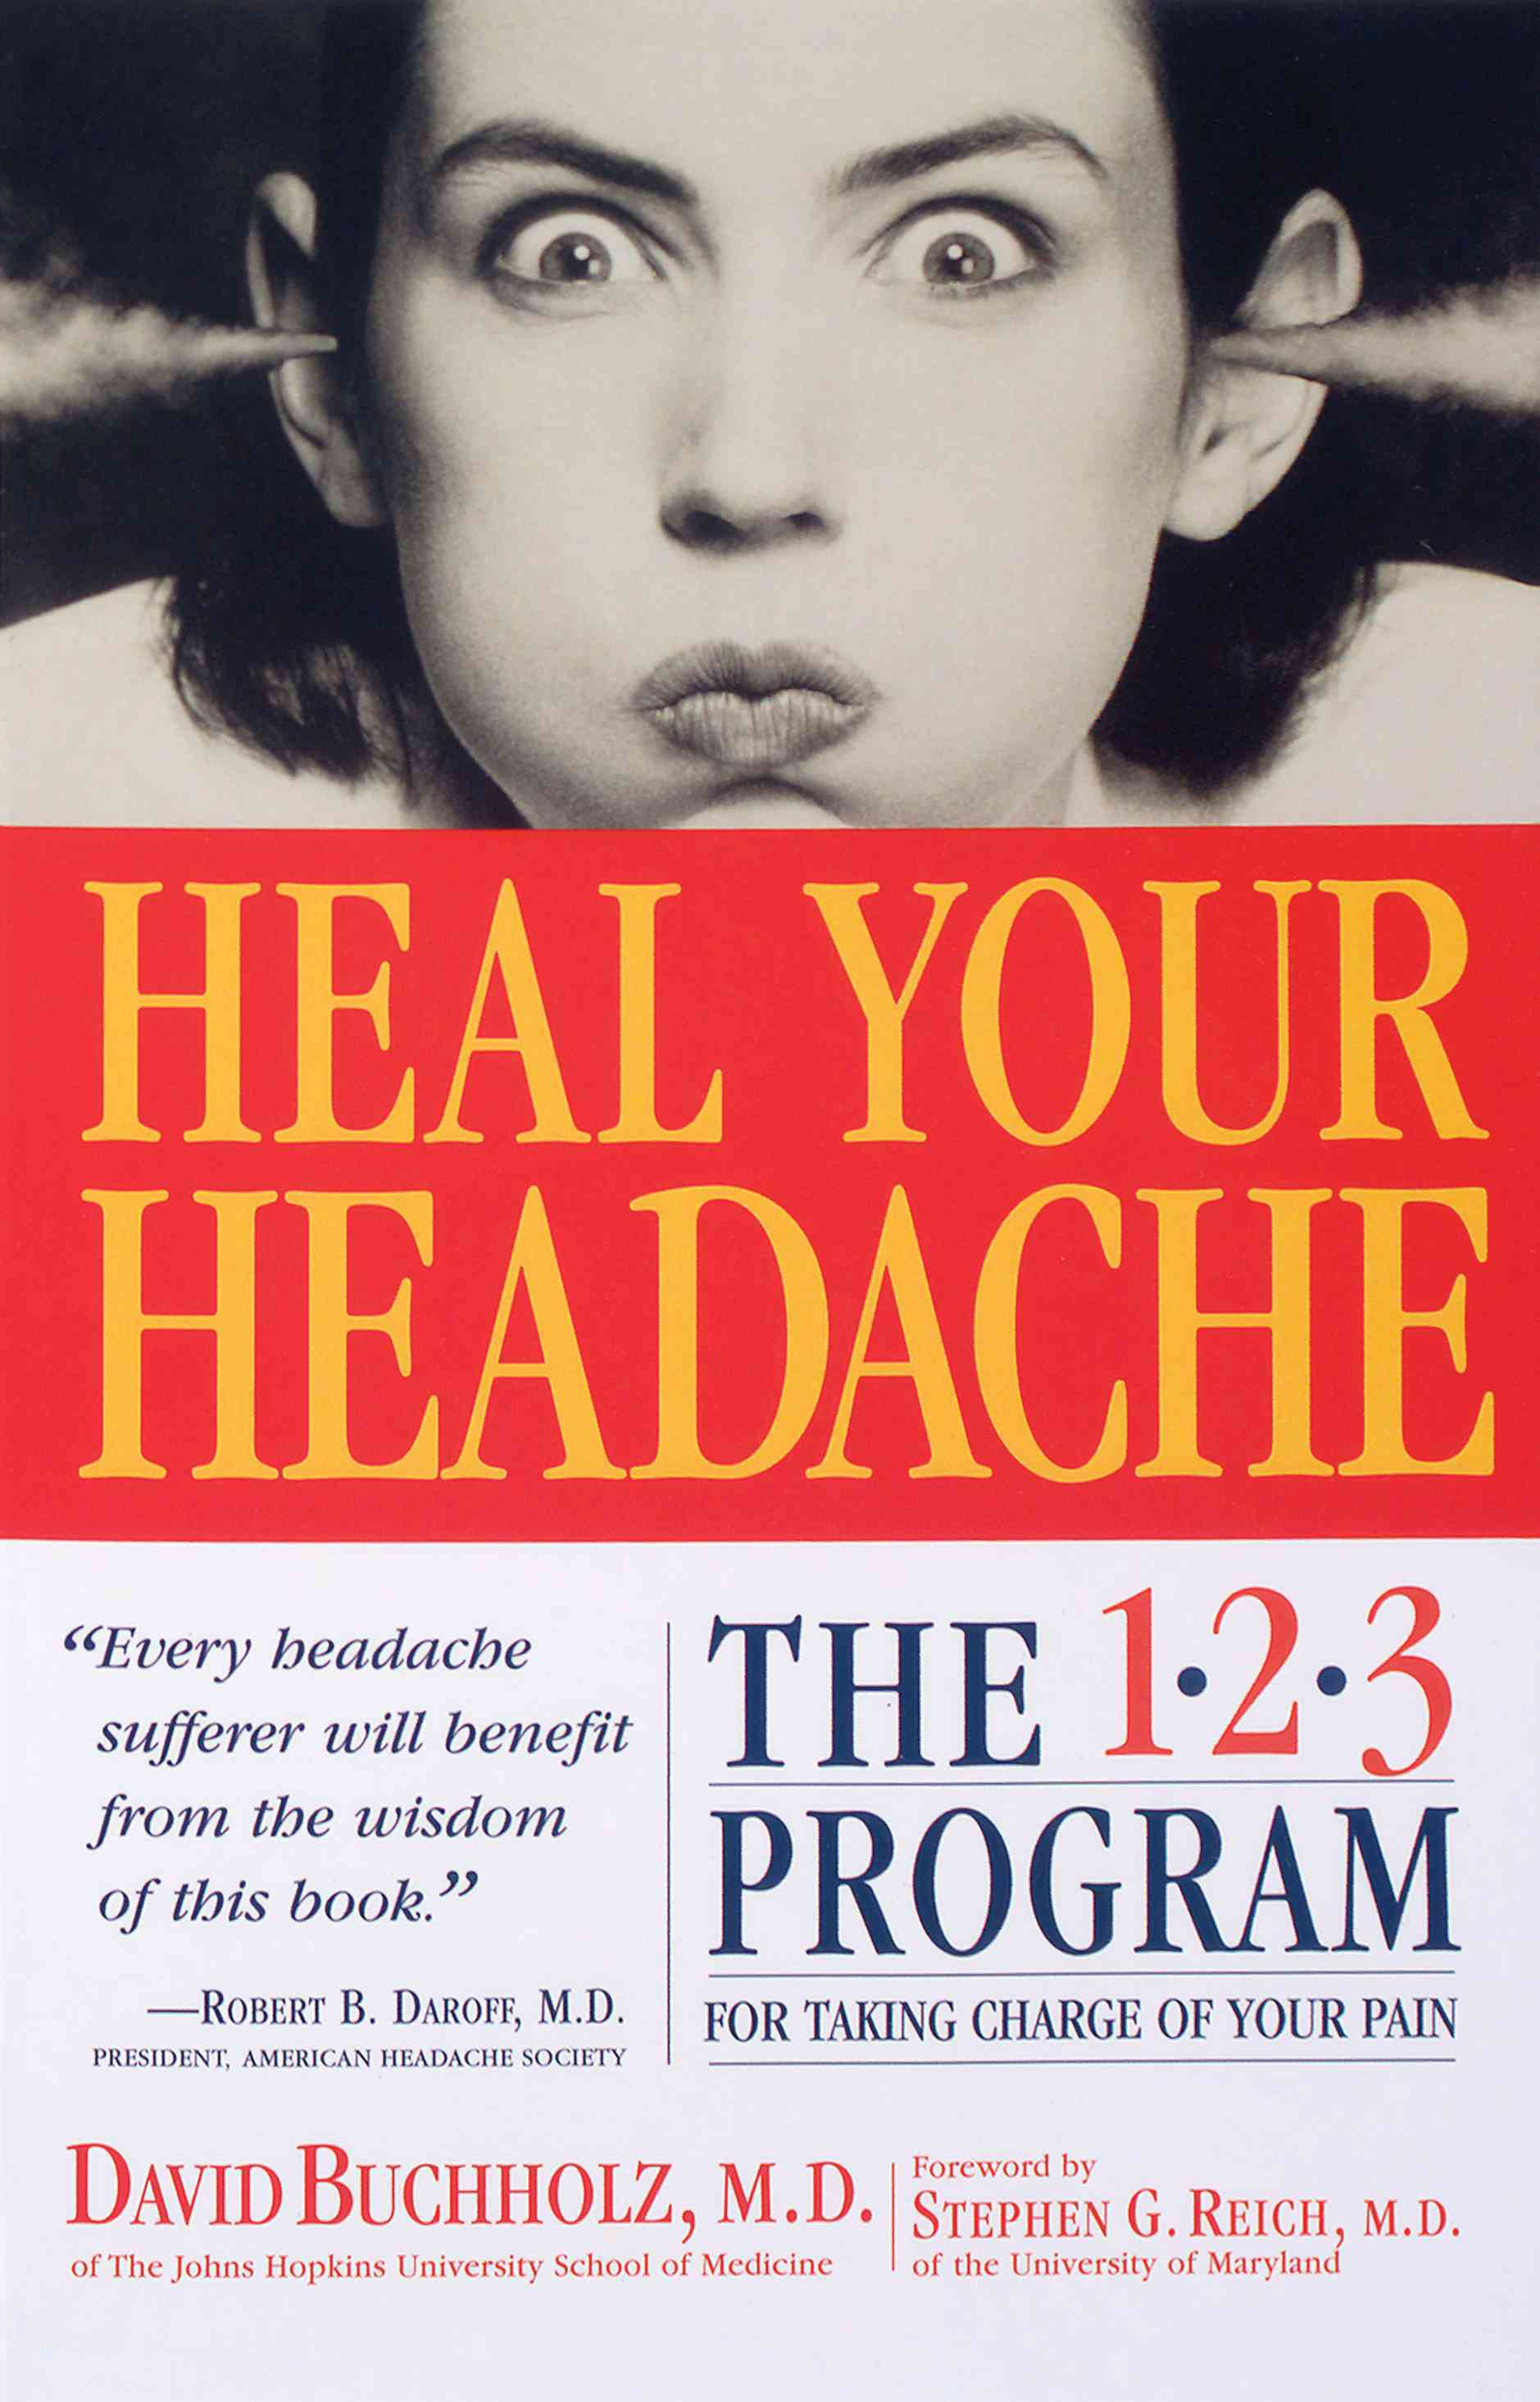 Heal Your Headache: The 1-2-3 Program for Taking Charge of Your Pain (Paperback) - Thumbnail 0